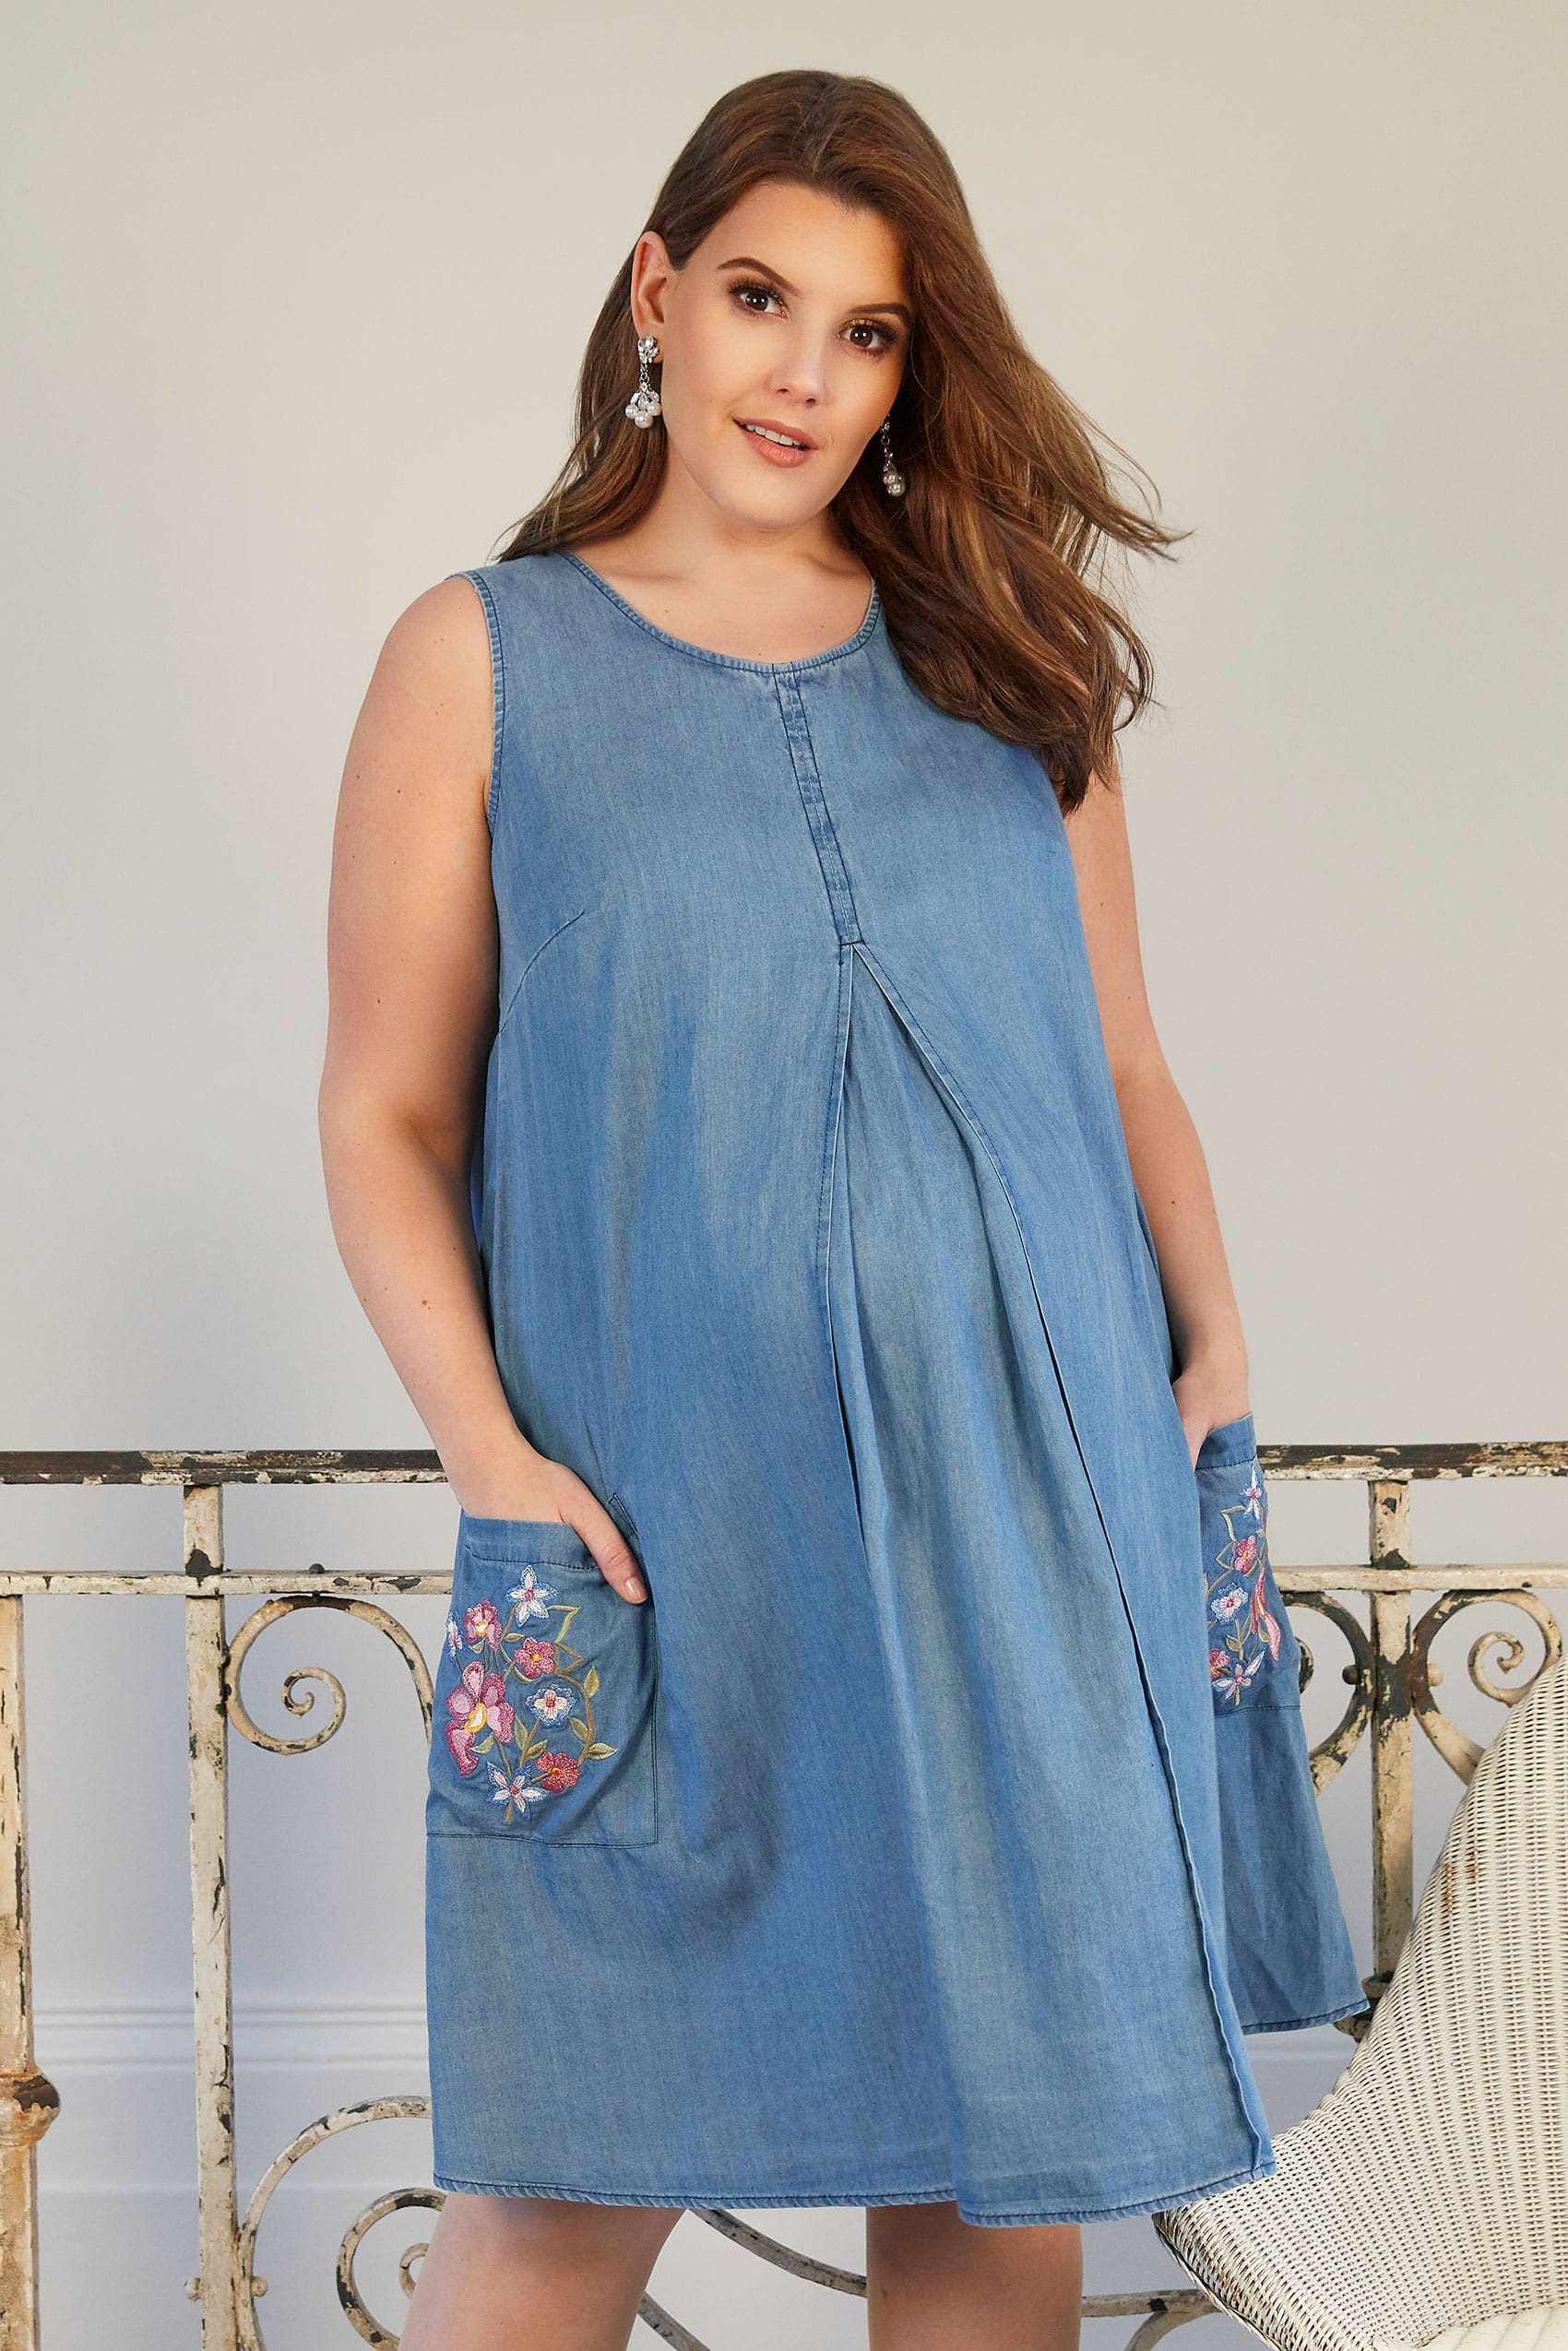 BUMP IT UP MATERNITY Blue Chambray Pleated Dress With Floral Embroidery